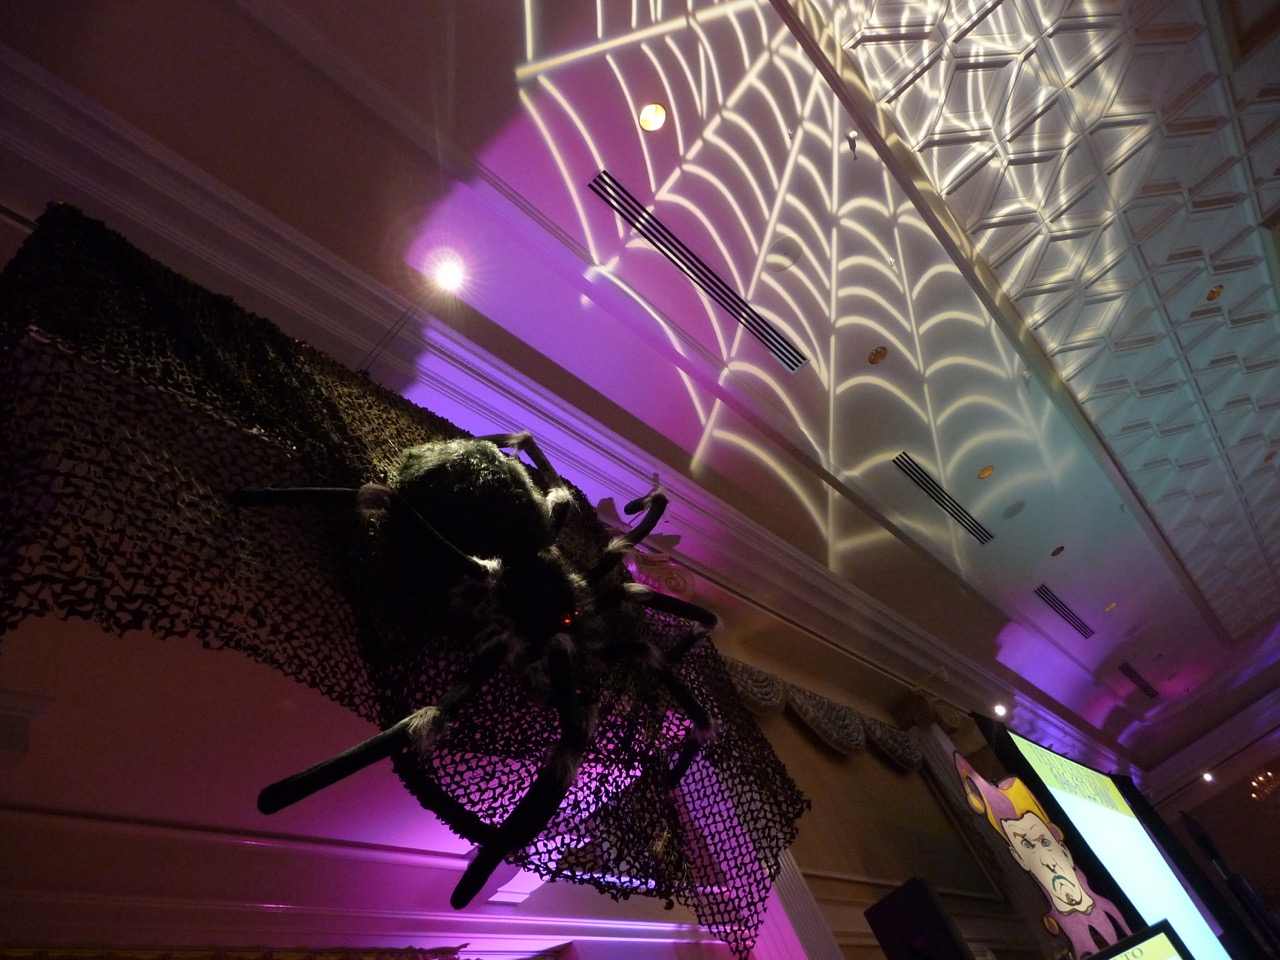 Halloween+Decor+Rentals+from+Eggsotic+Events+NJ+NYC+-+1.jpg